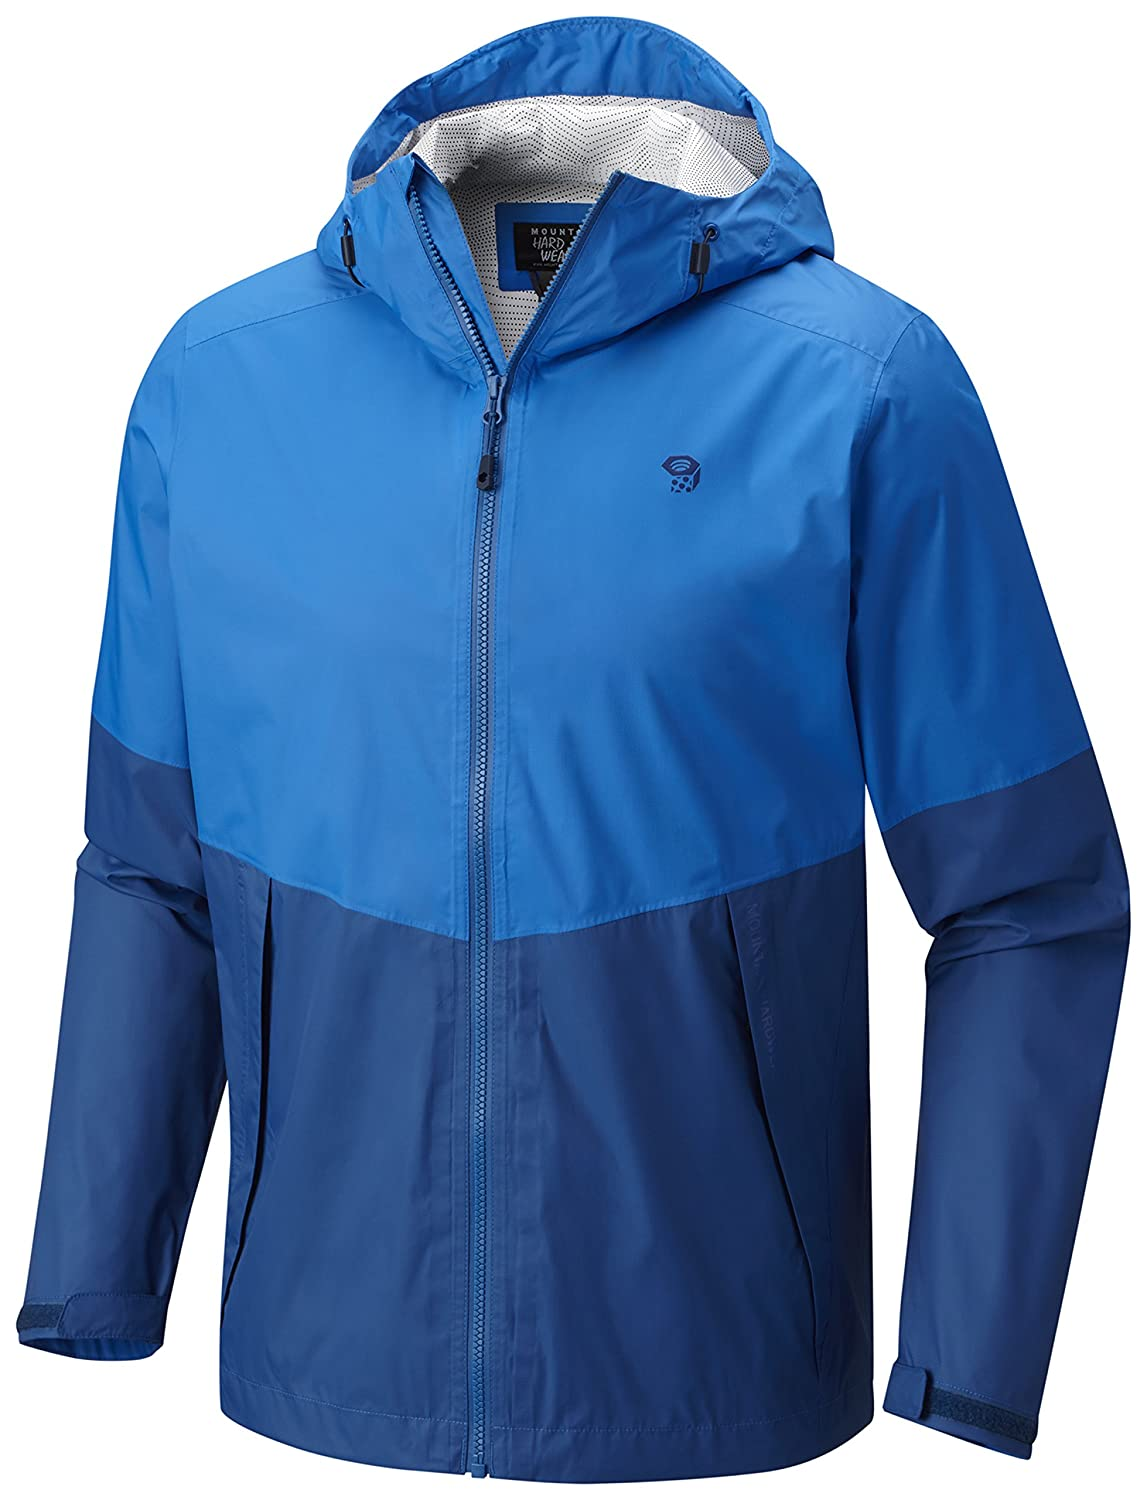 マウンテンハードウェア指数Jacket – Men 's B01N0I73ZB XX-Large|Altitude Blue/Nightfall Blue Altitude Blue/Nightfall Blue XX-Large